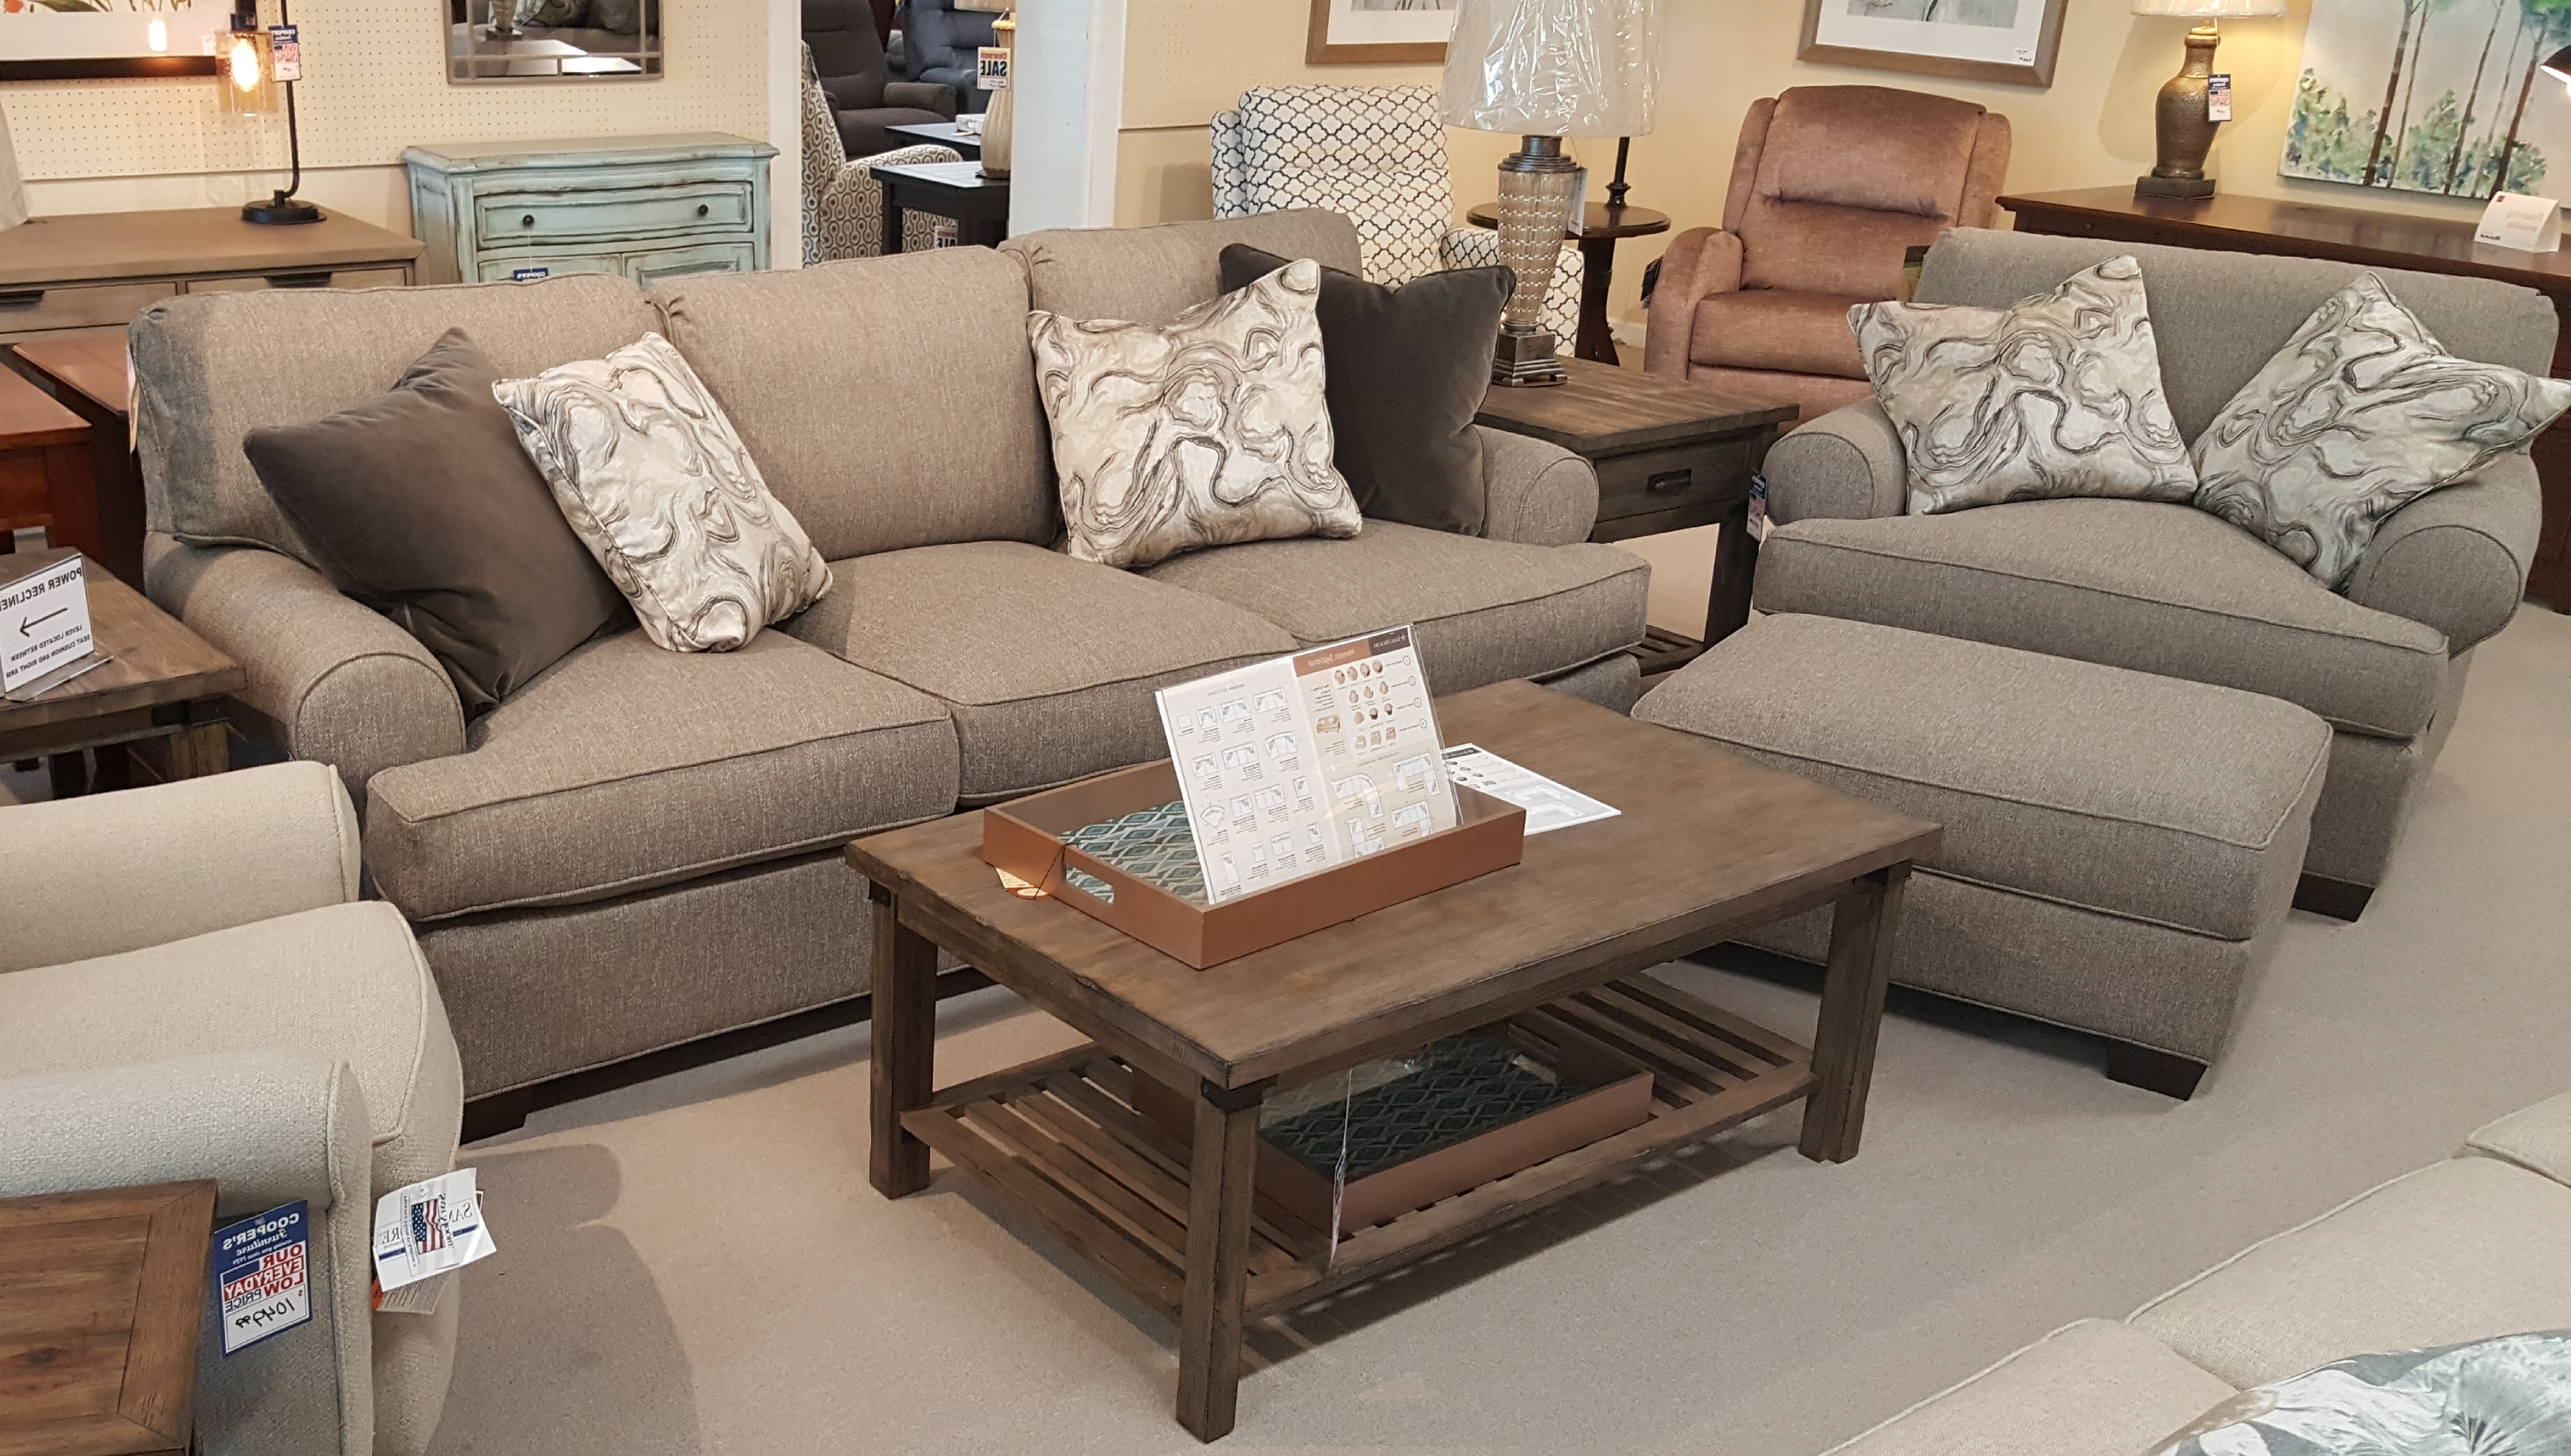 Sofas, Recliners, Sectionals Intended For Durham Region Sectional Sofas (View 14 of 15)